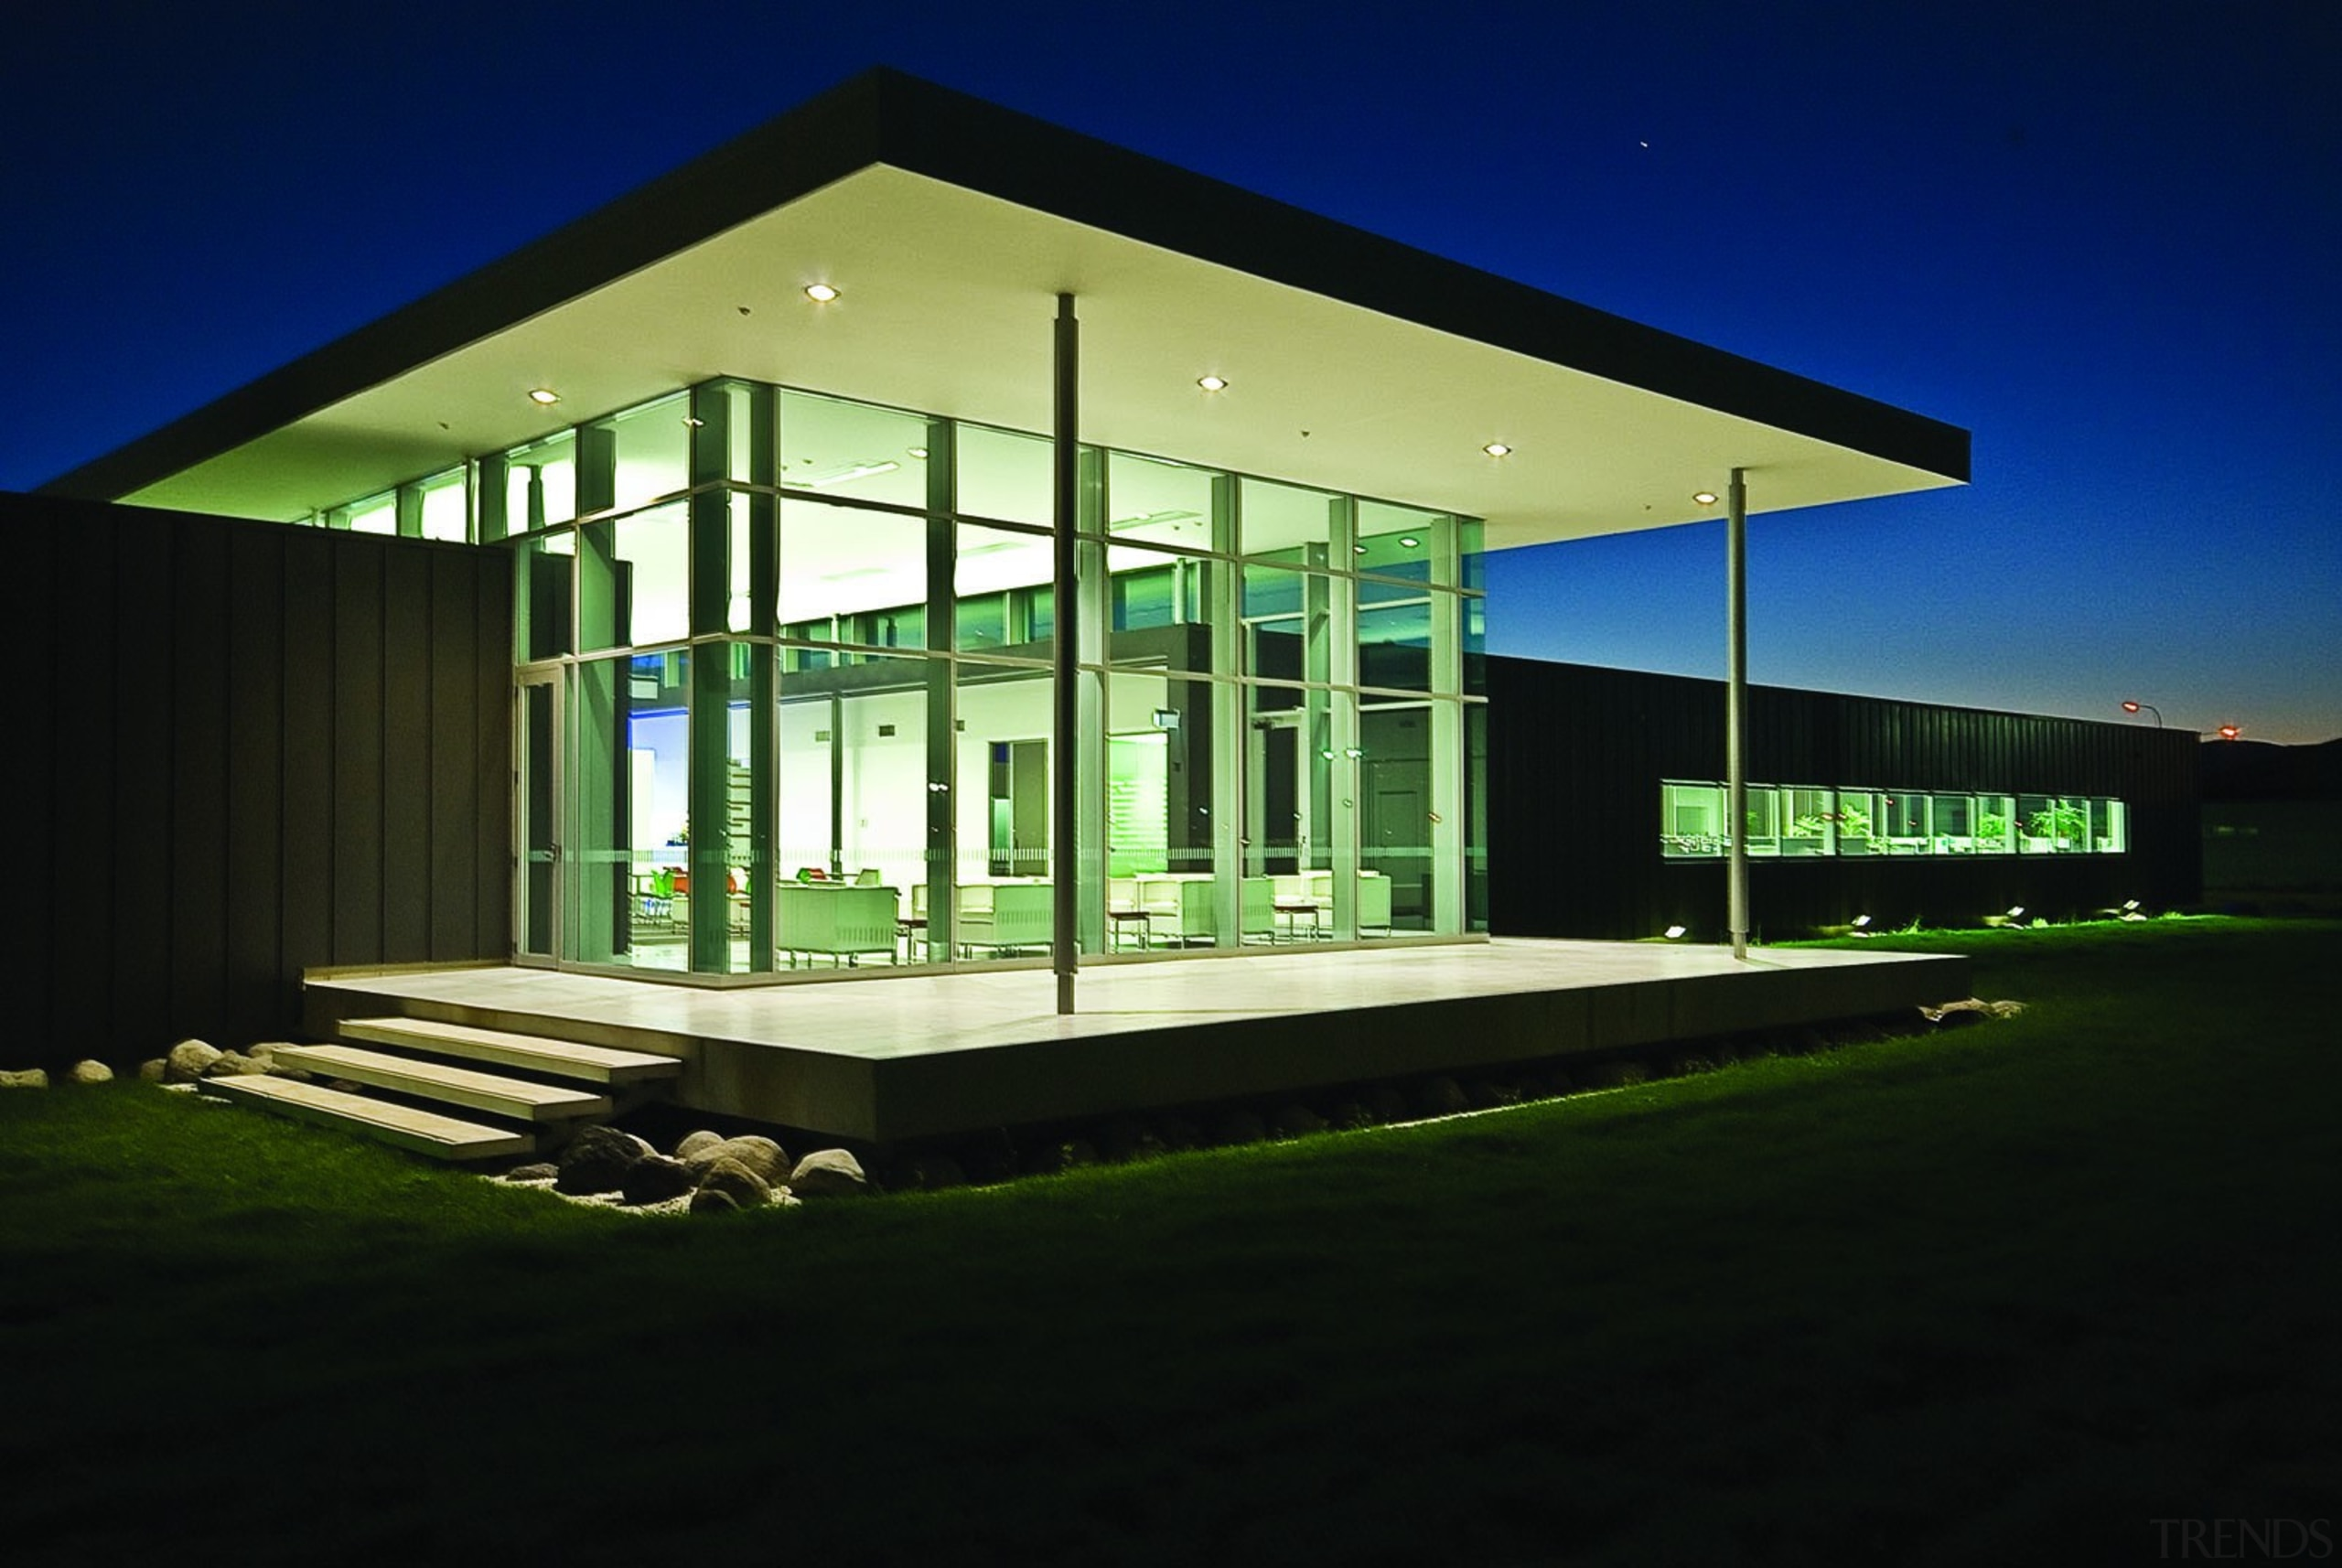 KEV0350 - KEV0 350 - architecture | commercial architecture, commercial building, corporate headquarters, facade, home, house, lighting, night, structure, black